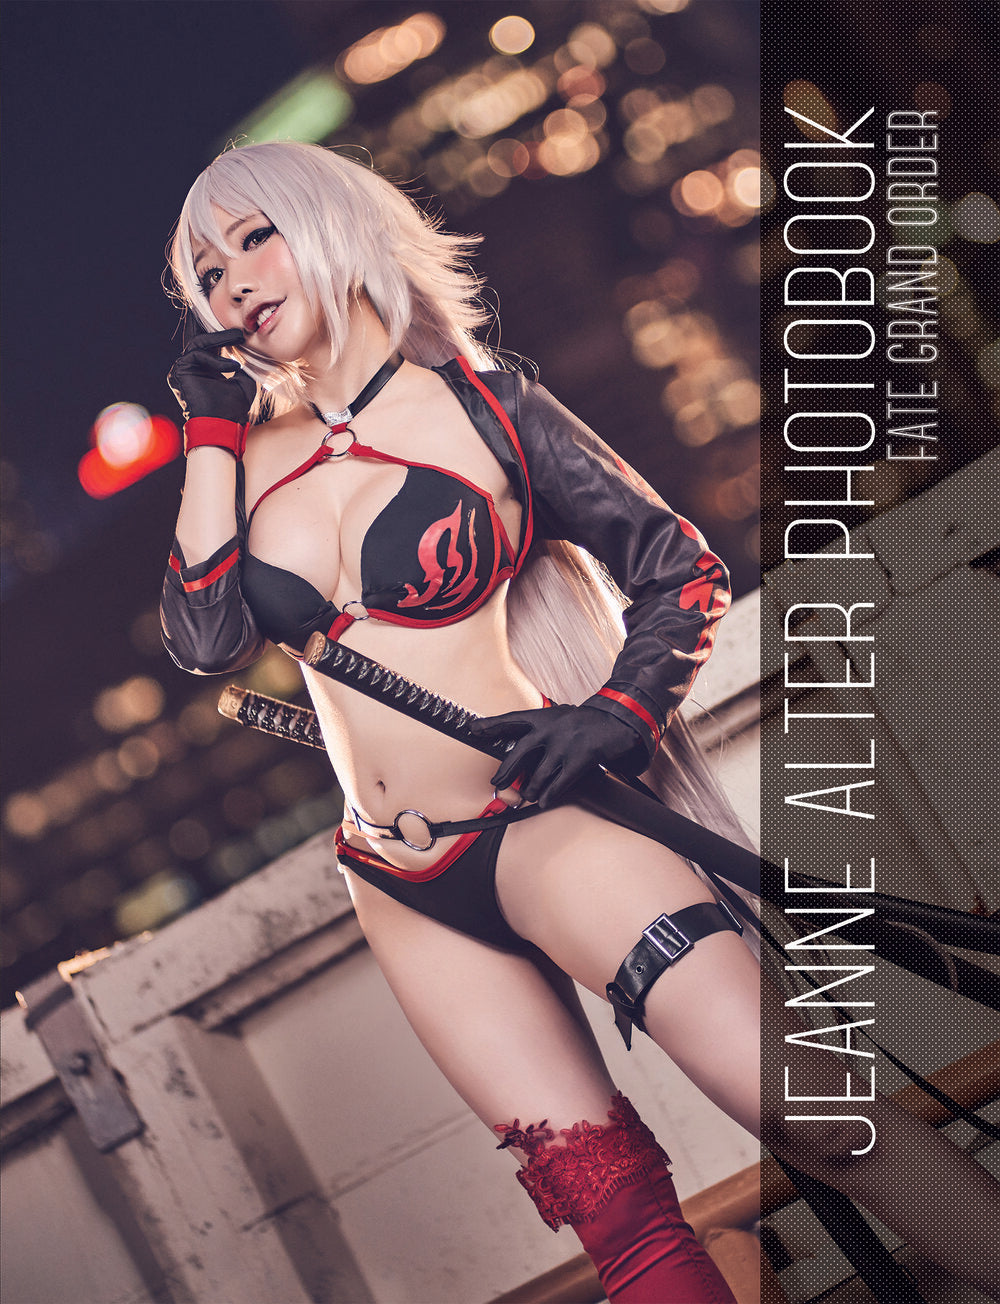 [Fate Grand order] Jeanne Alter - Photobook